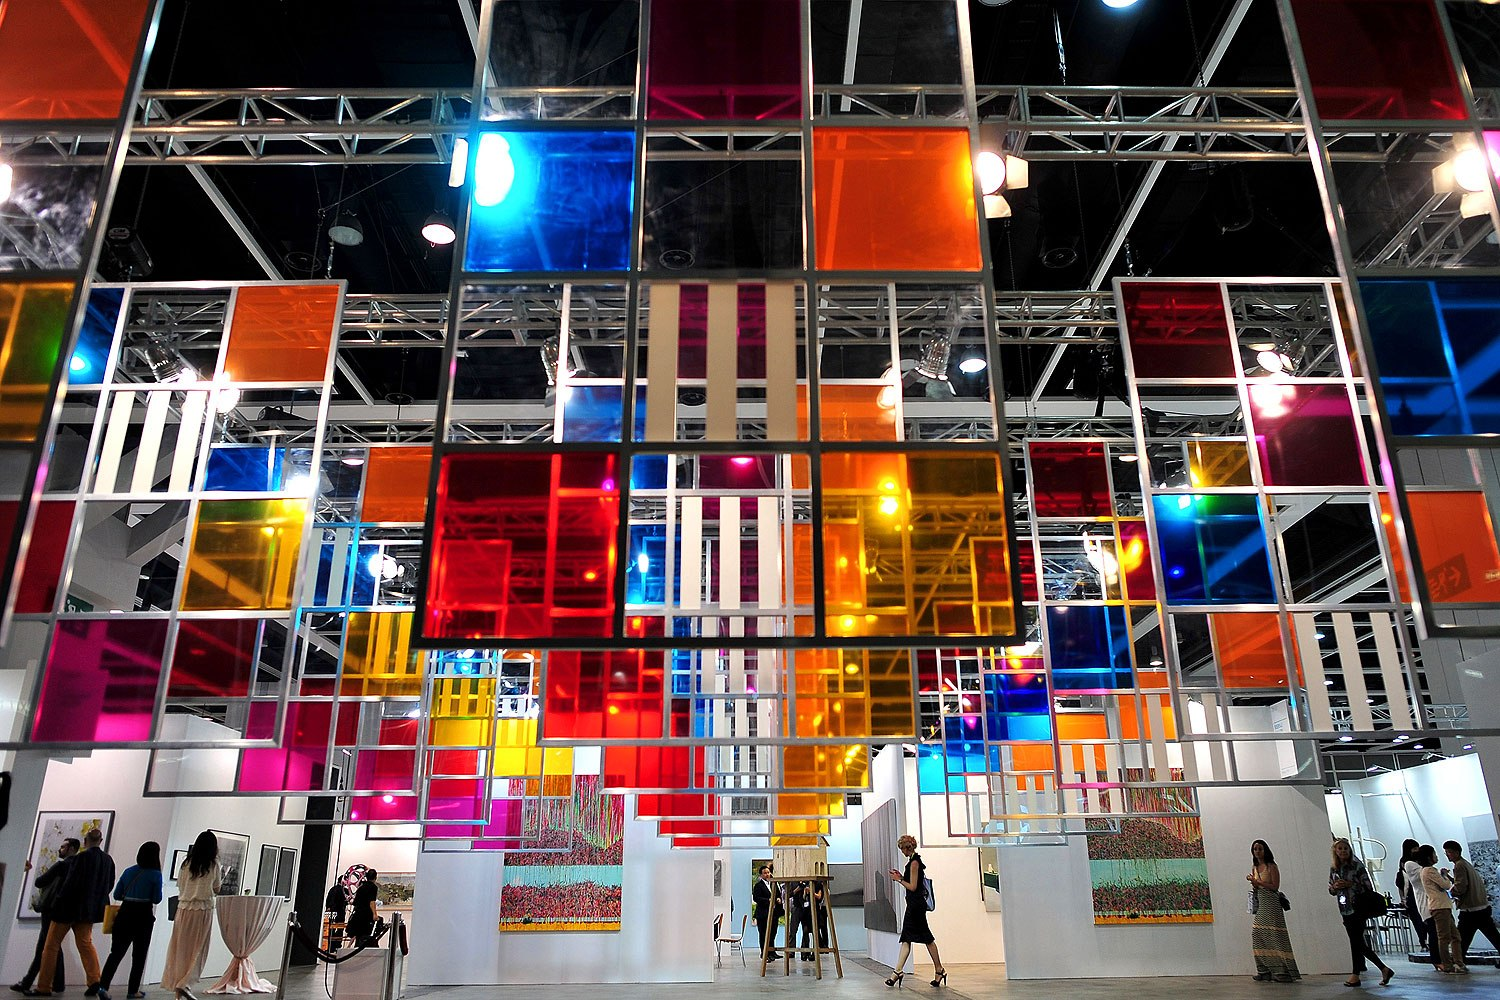 Asia's Art-Fair Boom: Hong Kong and Singapore Compete for Cultural Top Slot